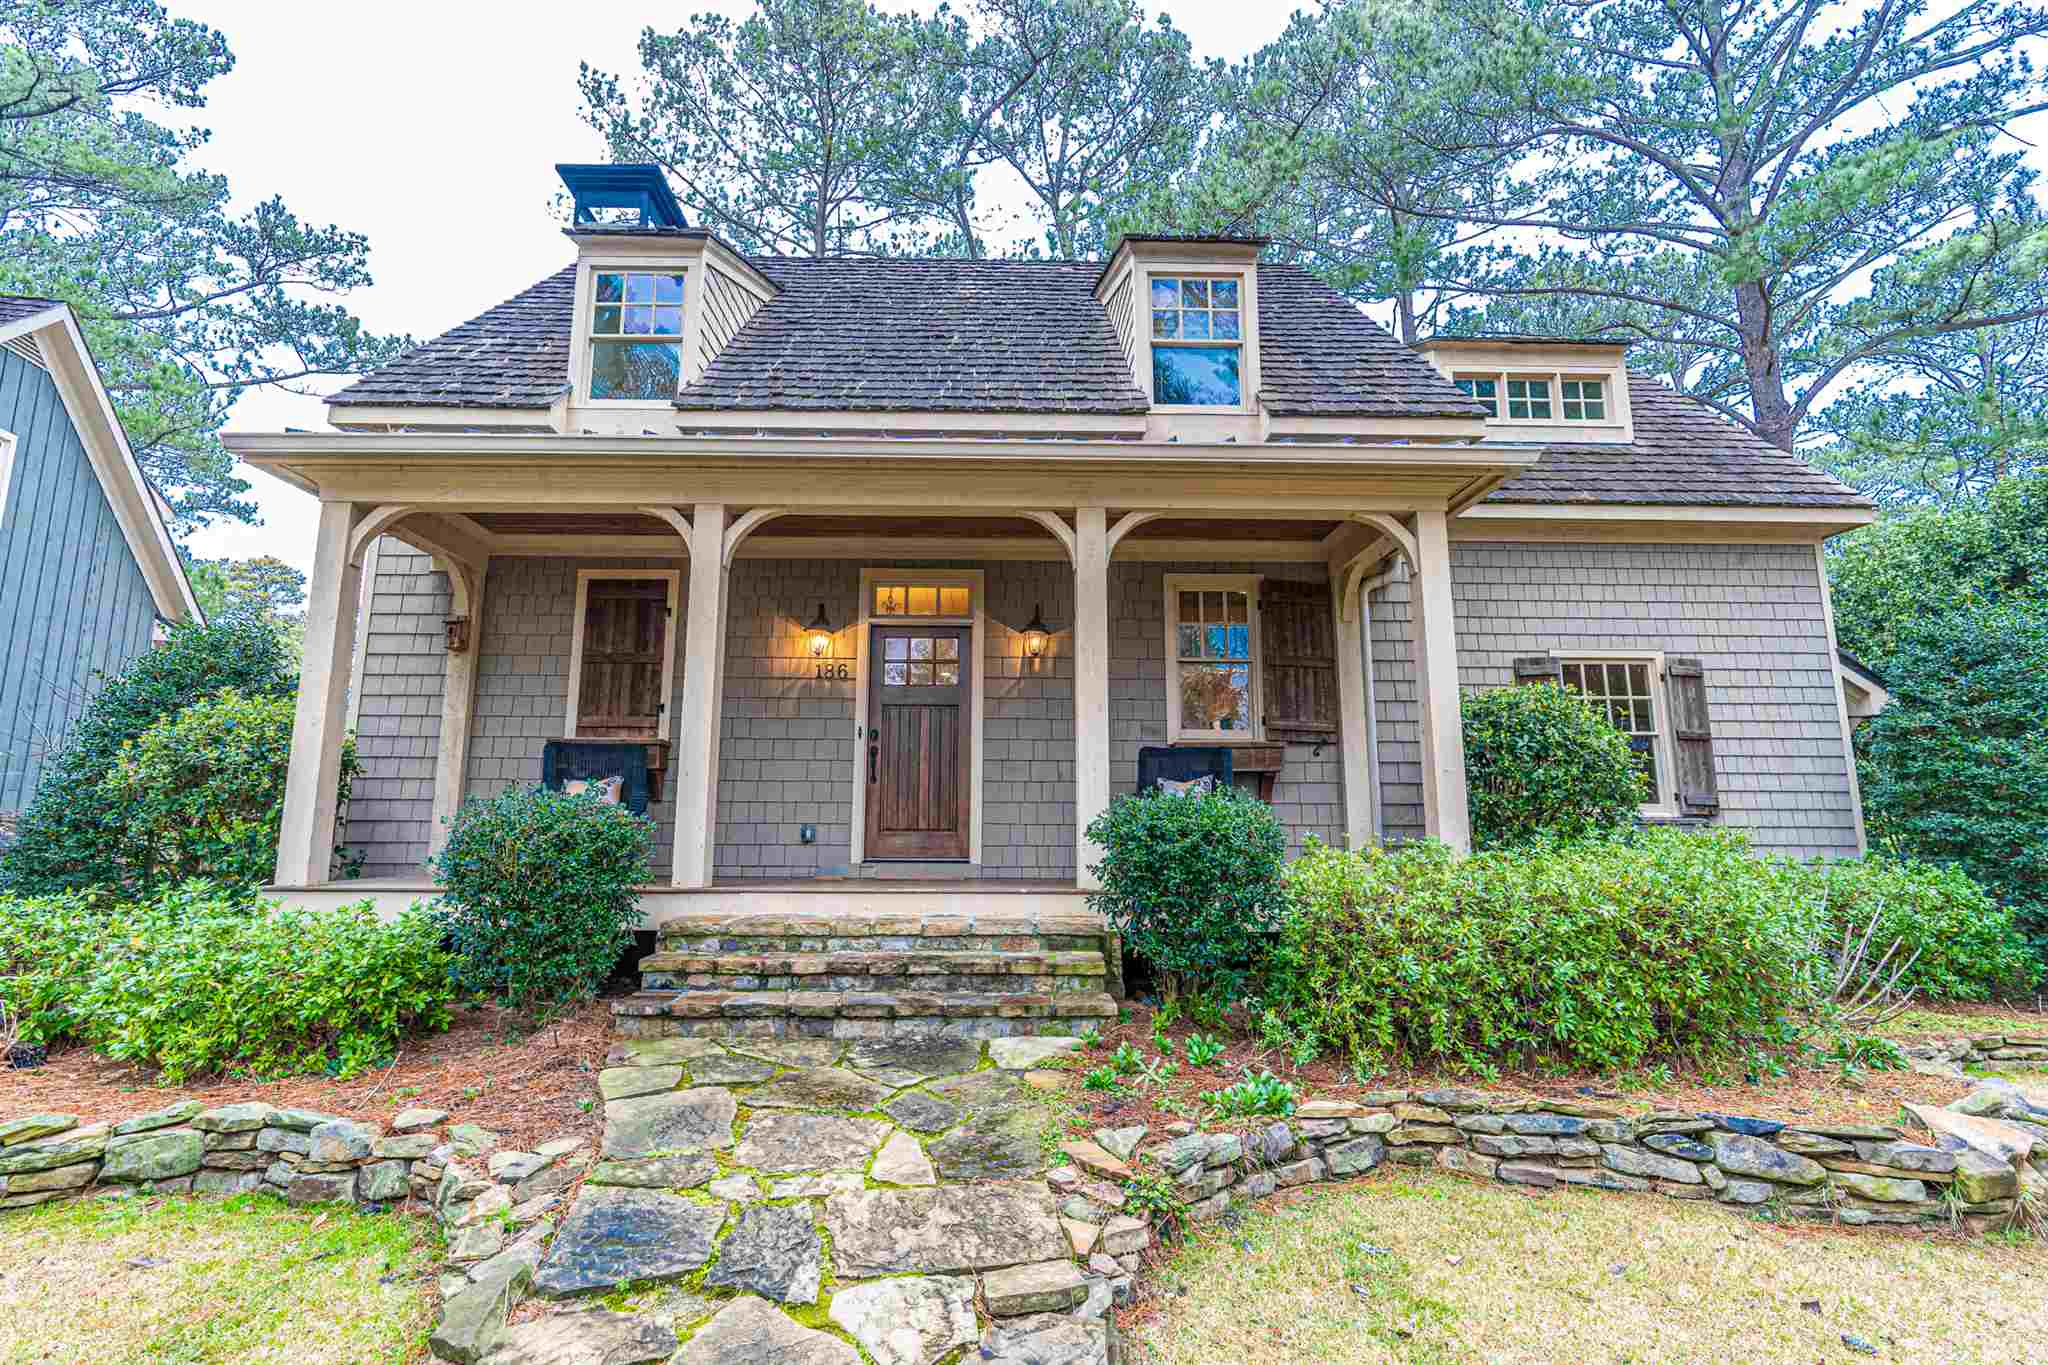 186 LONG LEAF LANE, Cuscowilla, Georgia